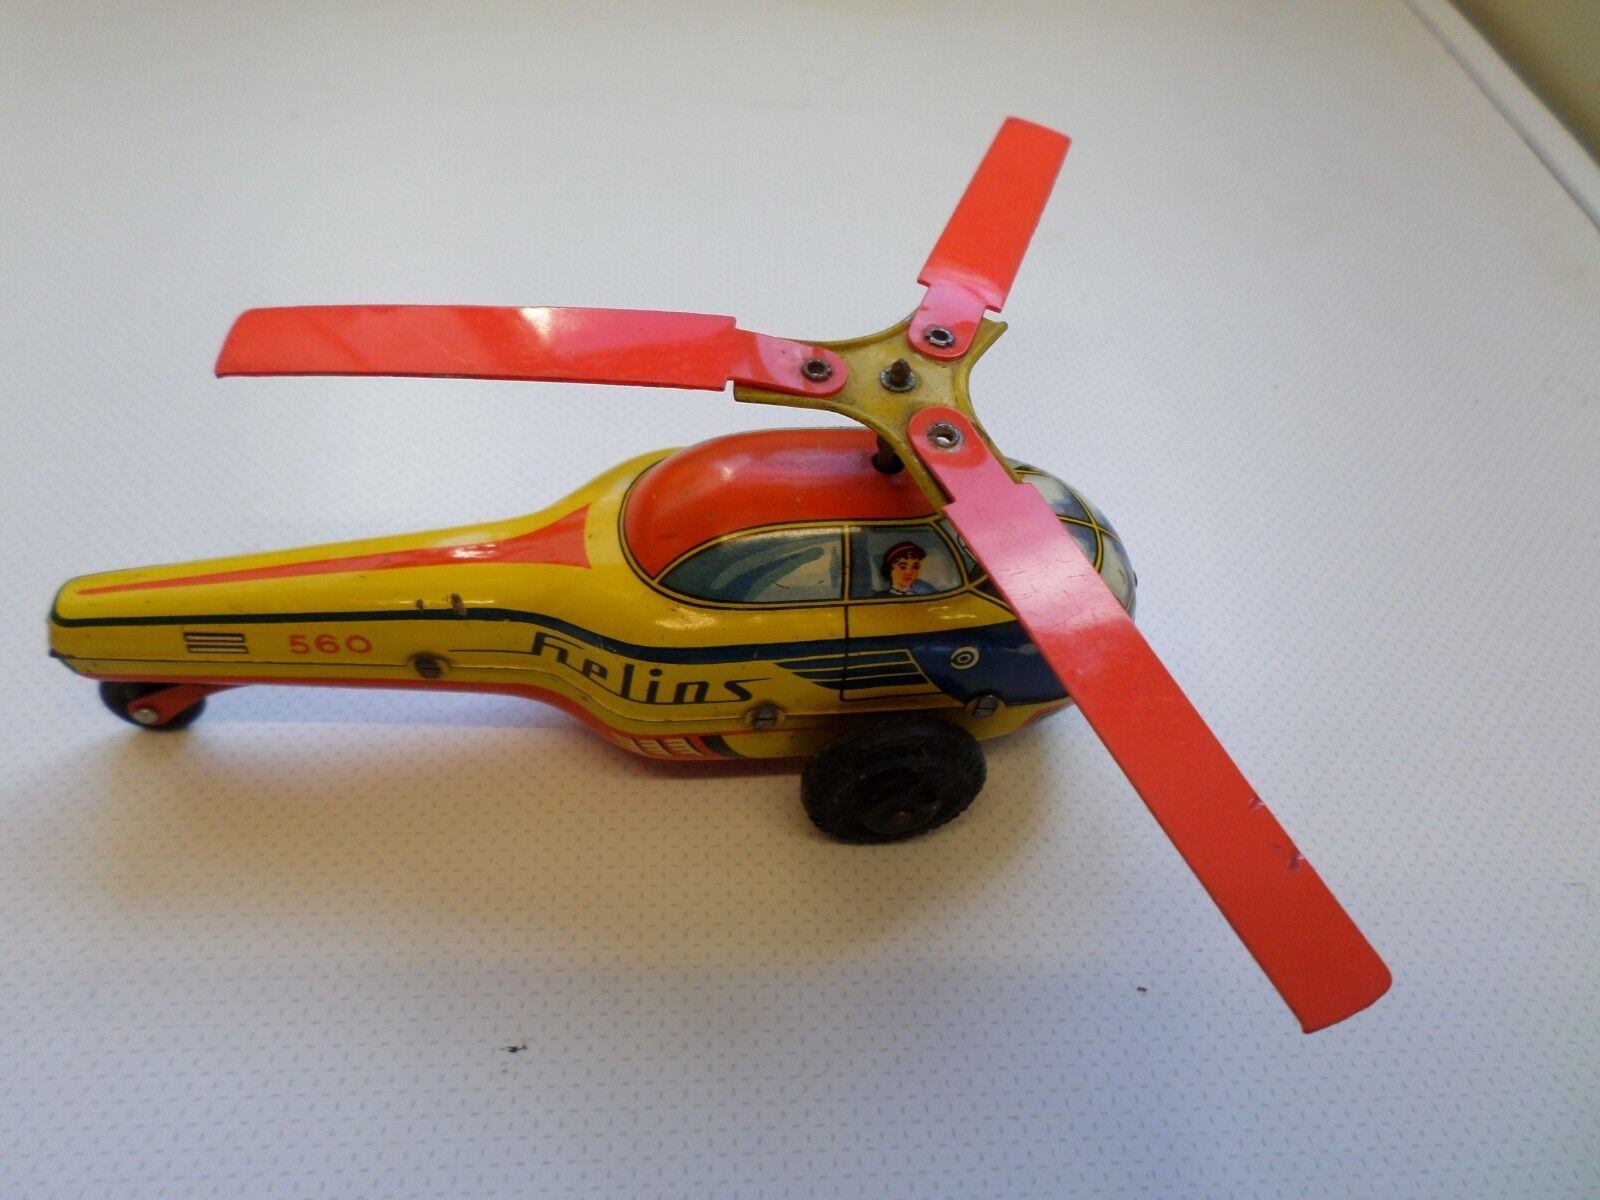 Blomer and Schuler West Germany tinplate Helins friction drive helicopter